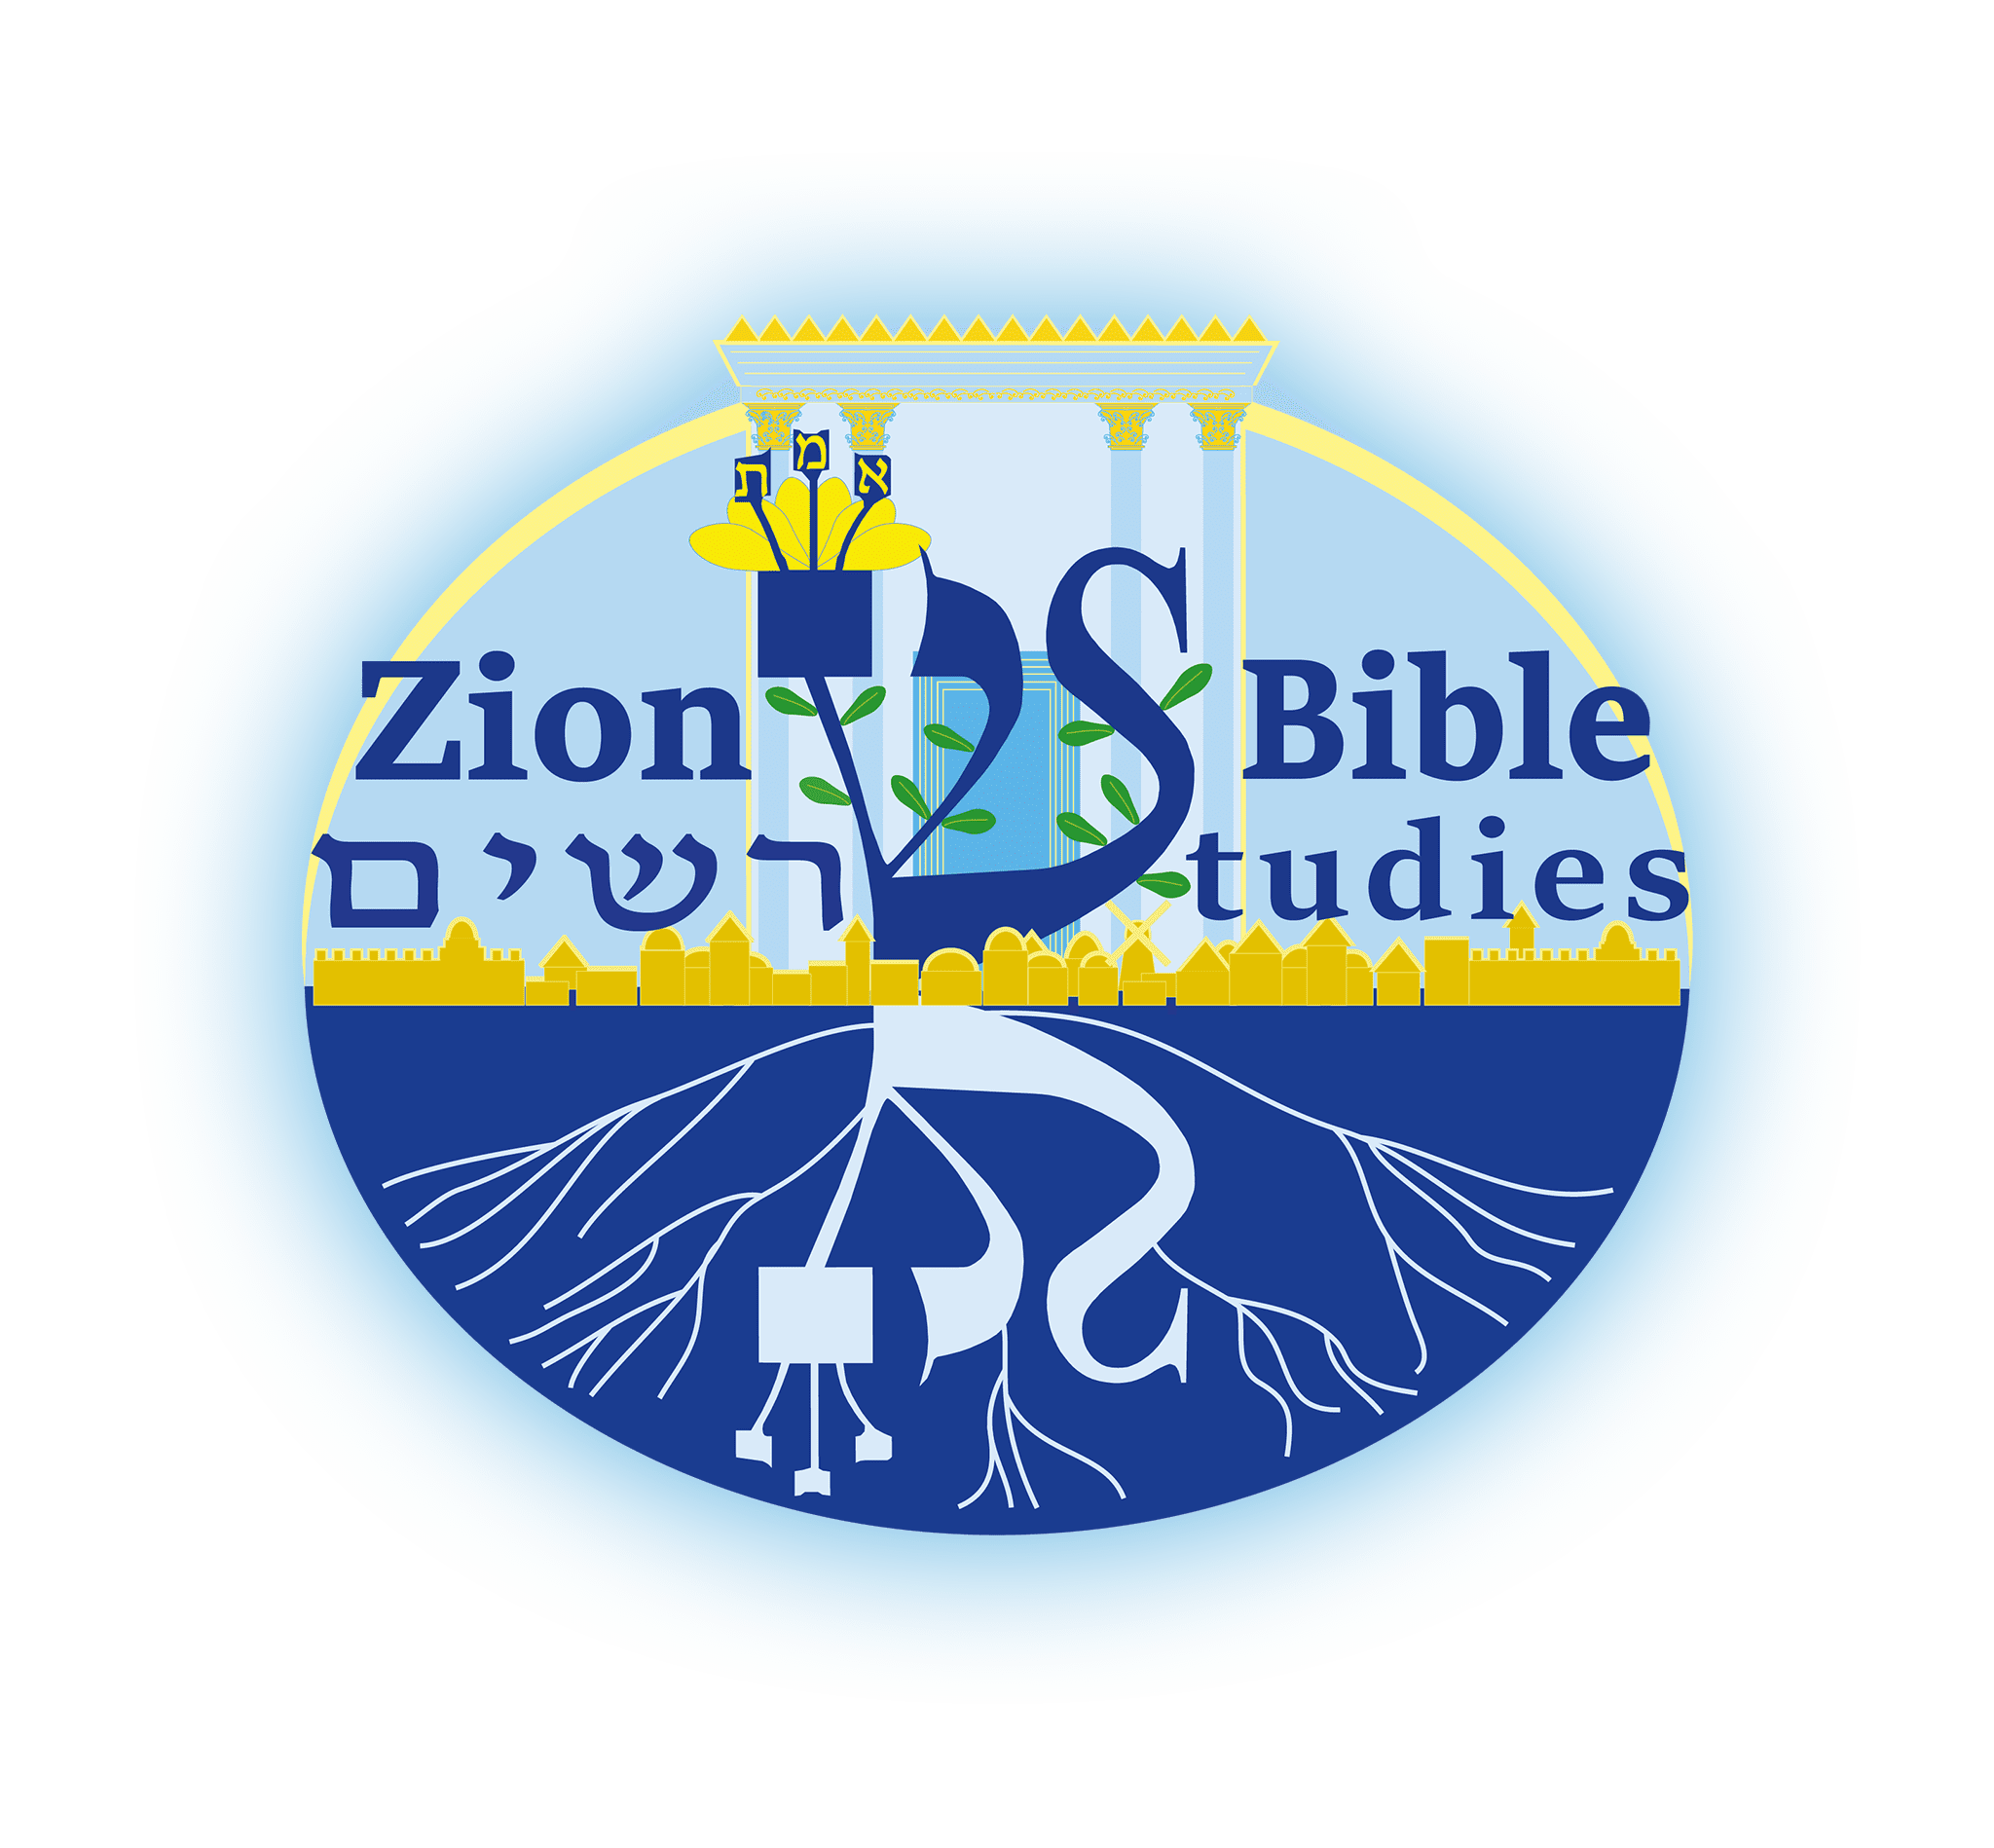 Zion Bible Studies